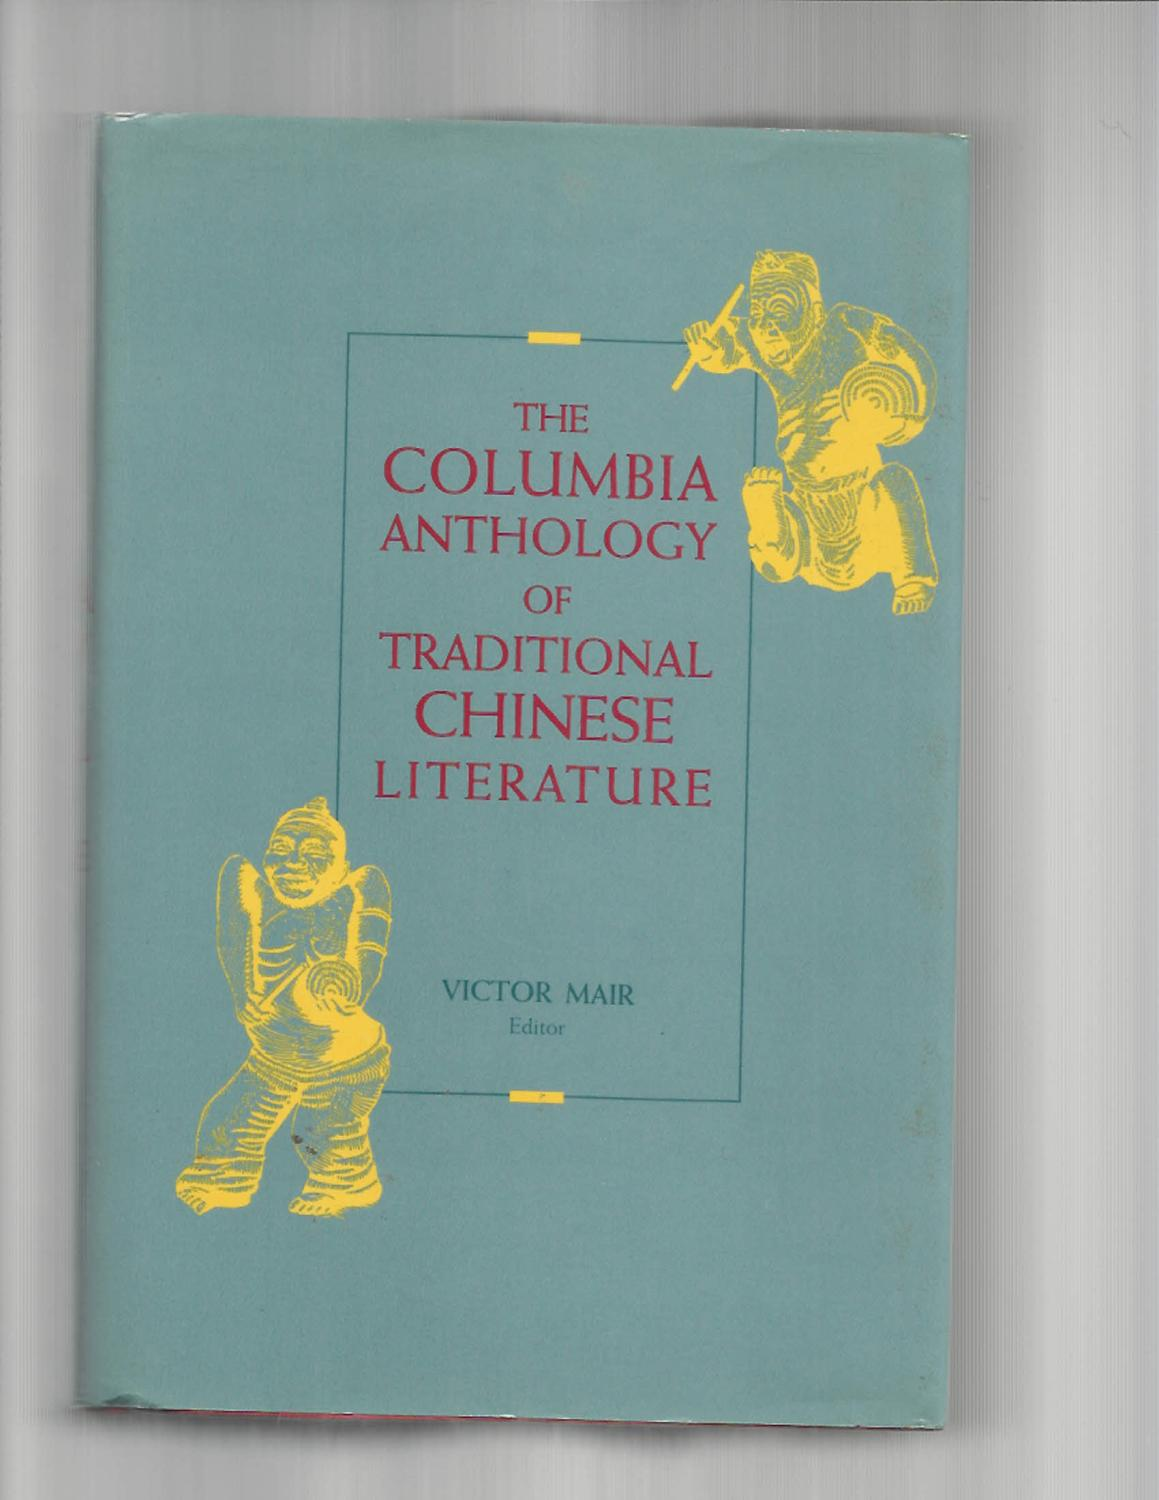 THE COLUMBIA ANTHOLOGY OF TRADITIONAL CHINESE LITERATURE. - Mair, Victor